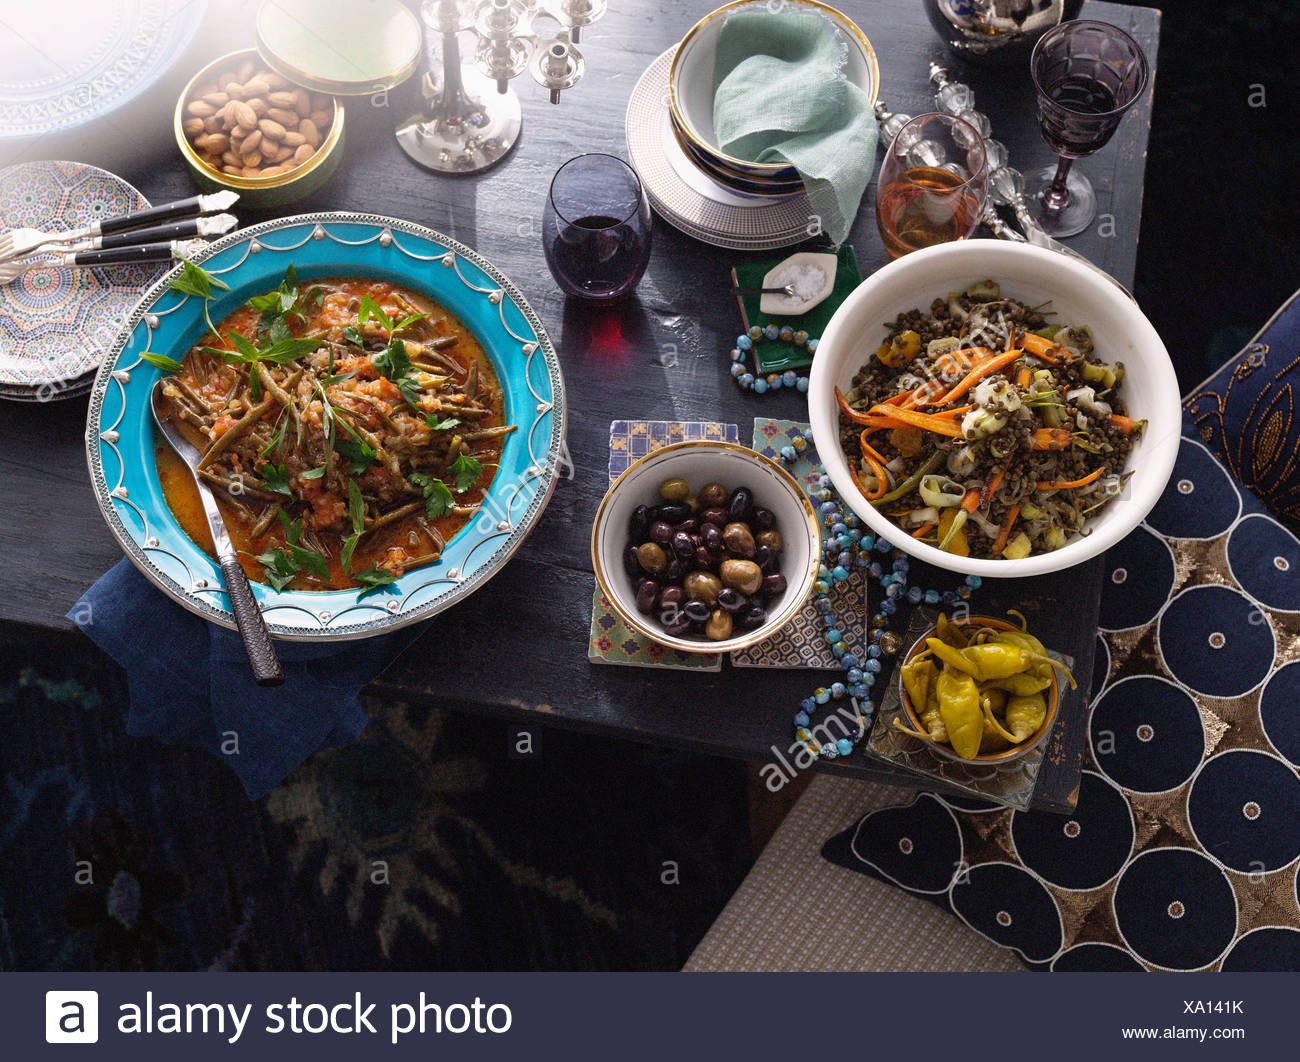 Plates of Turkish food on table - Stock Image